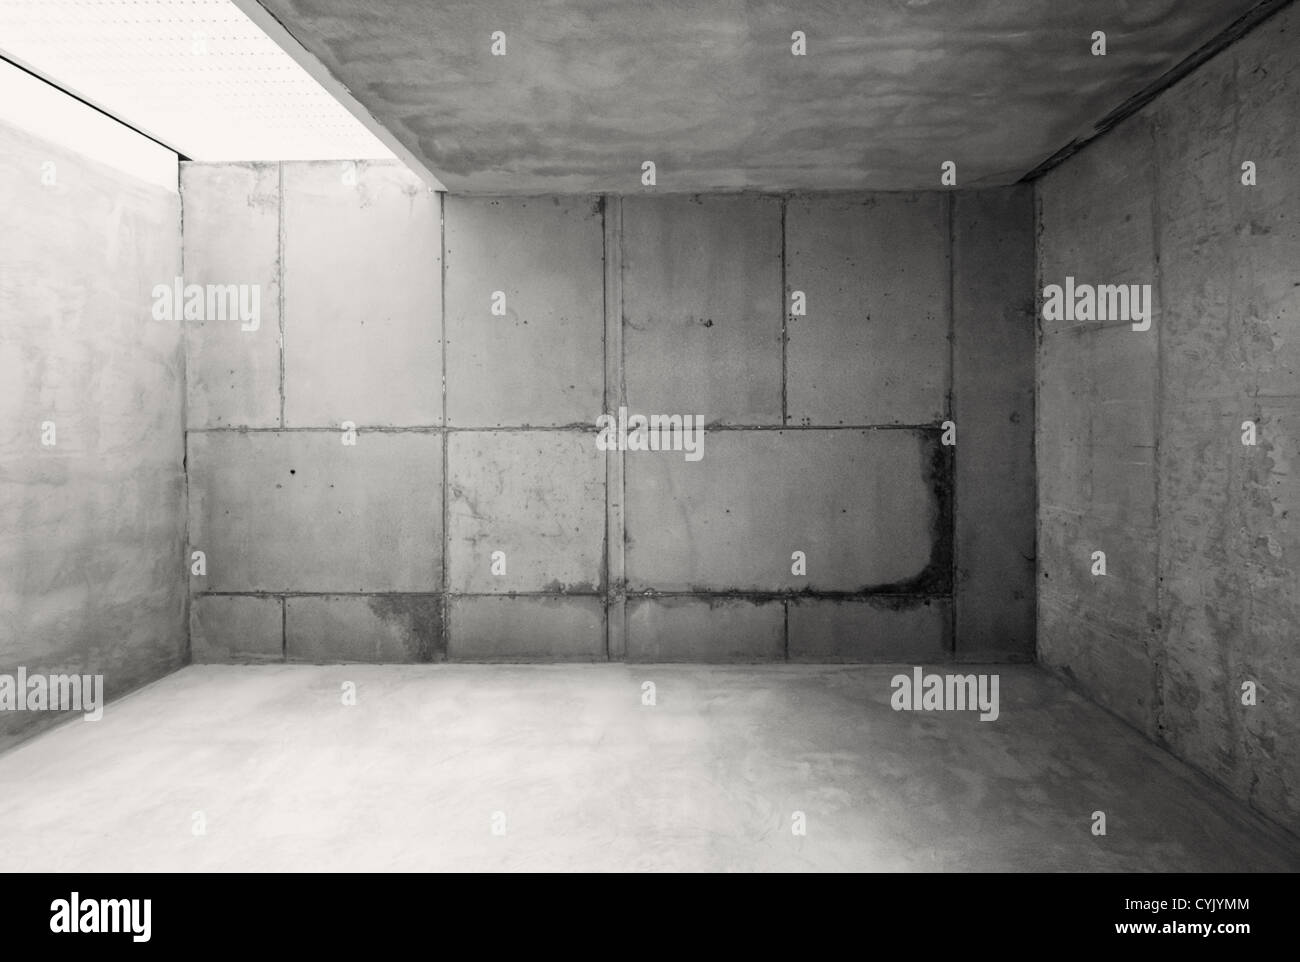 Empty warehouse room with concrete walls and floor. - Stock Image